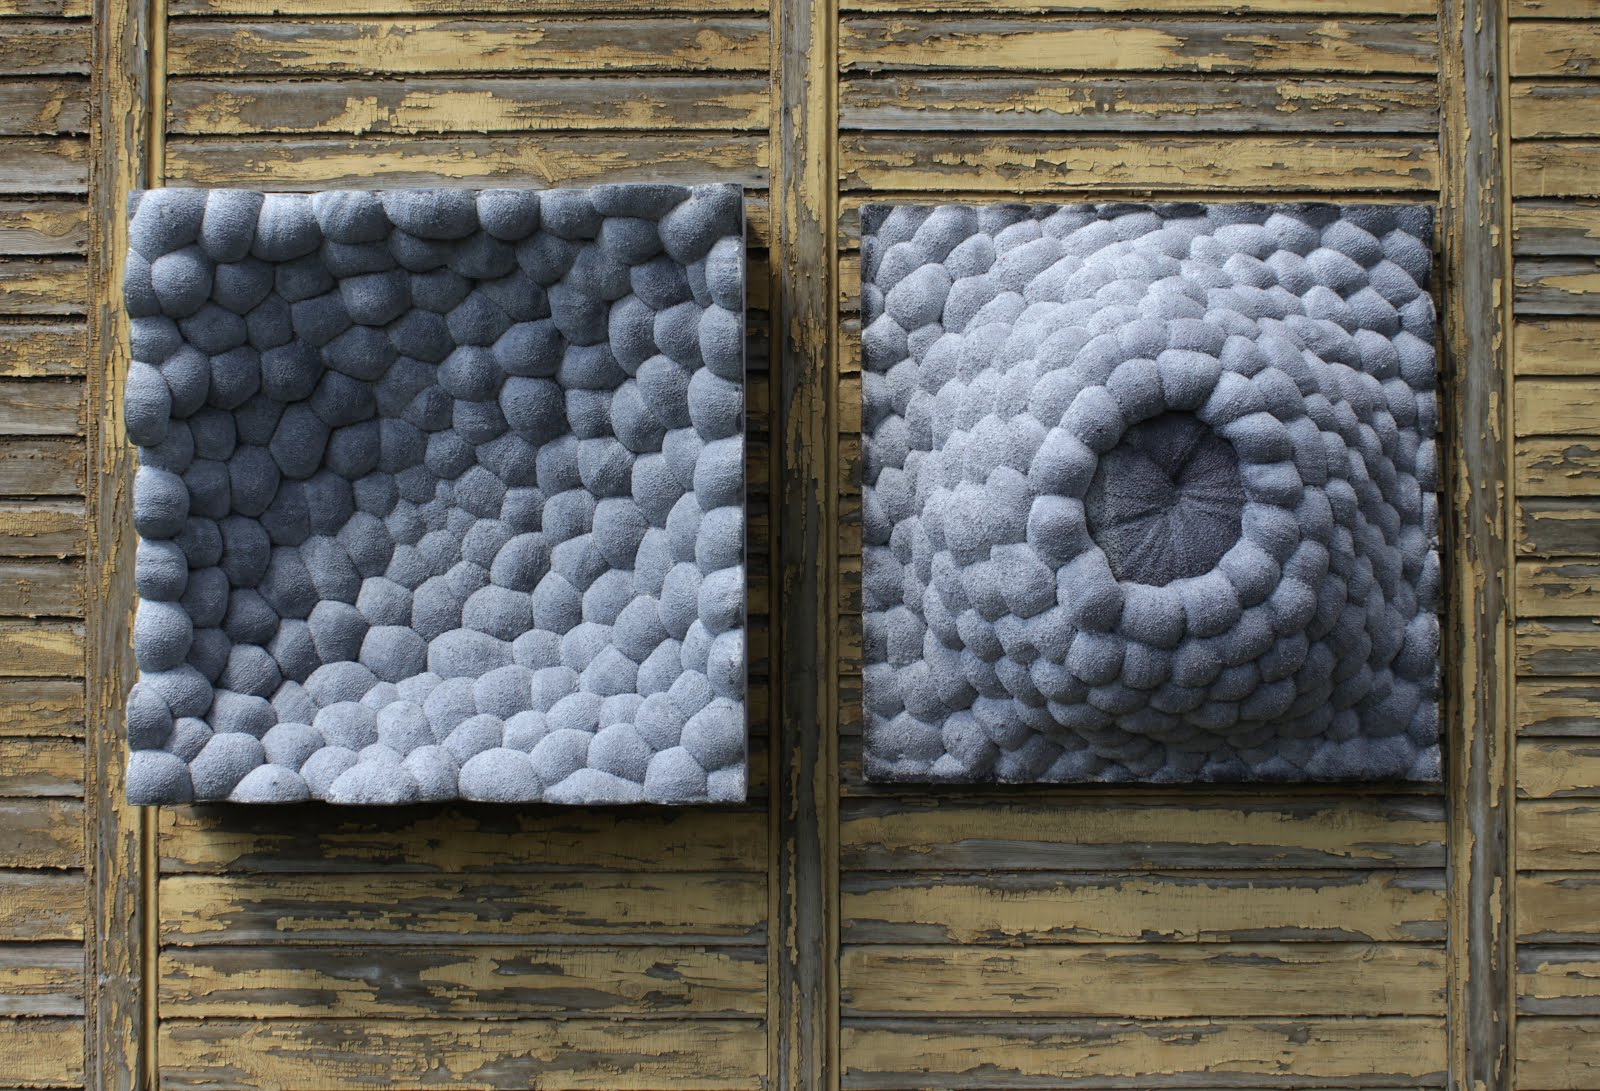 d3, 2015, mixed media, 100x100x35cm each